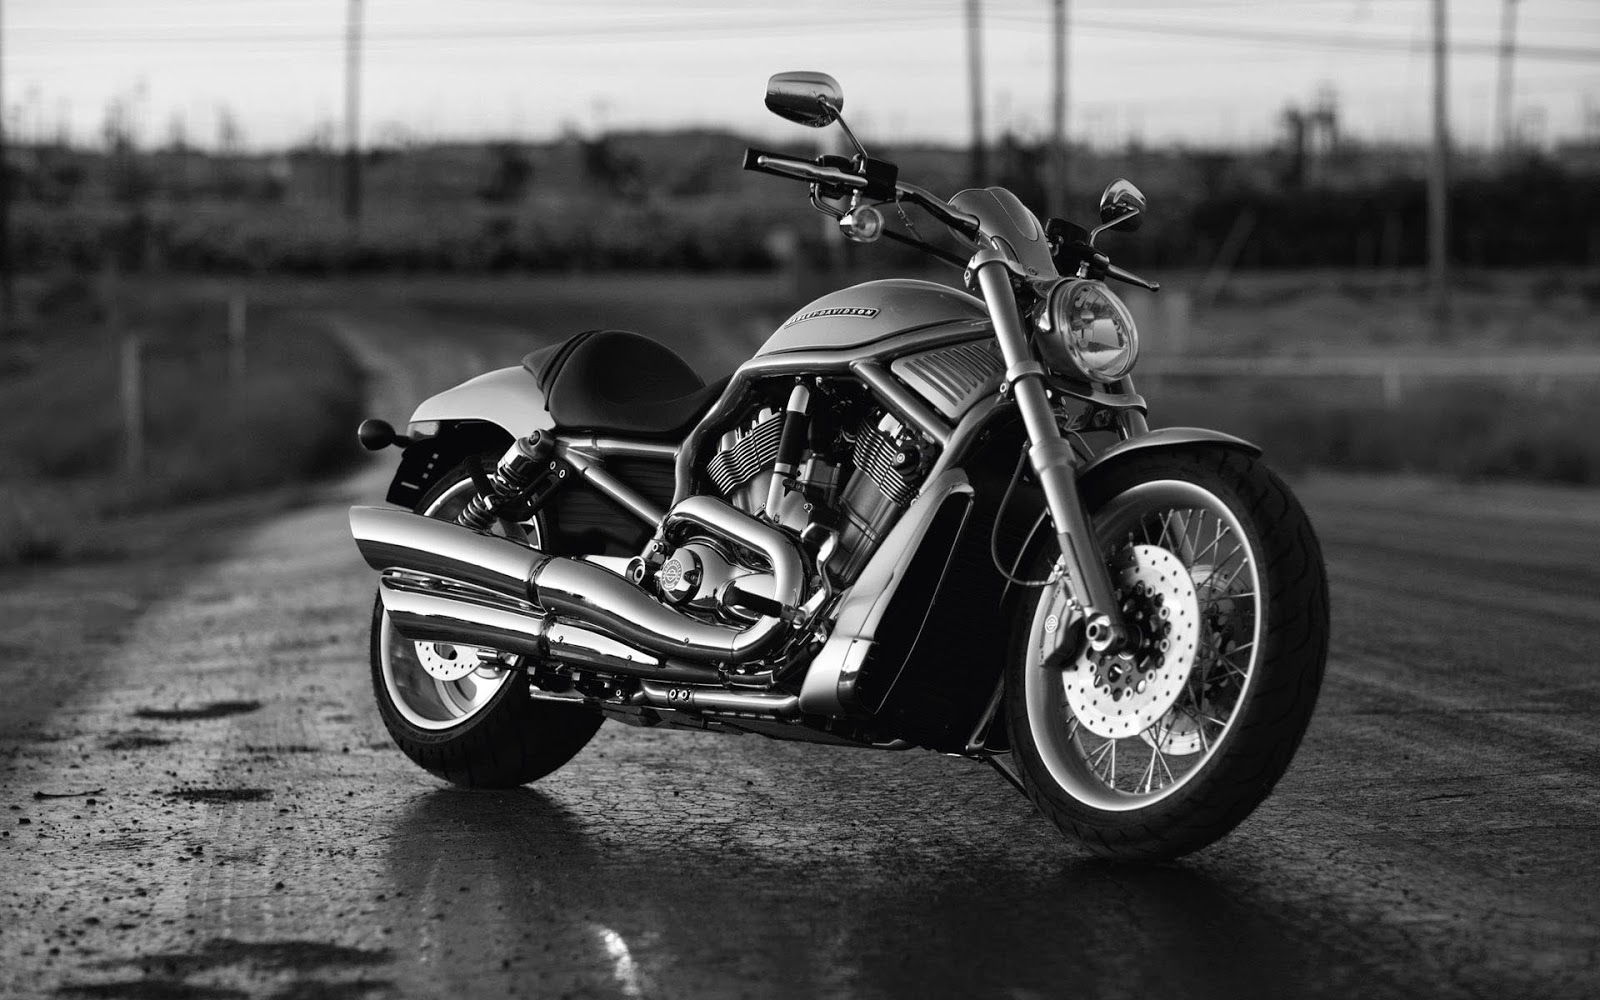 Bikes HD Wallpapers - HD Wallpapers - High Quality Wallpapers